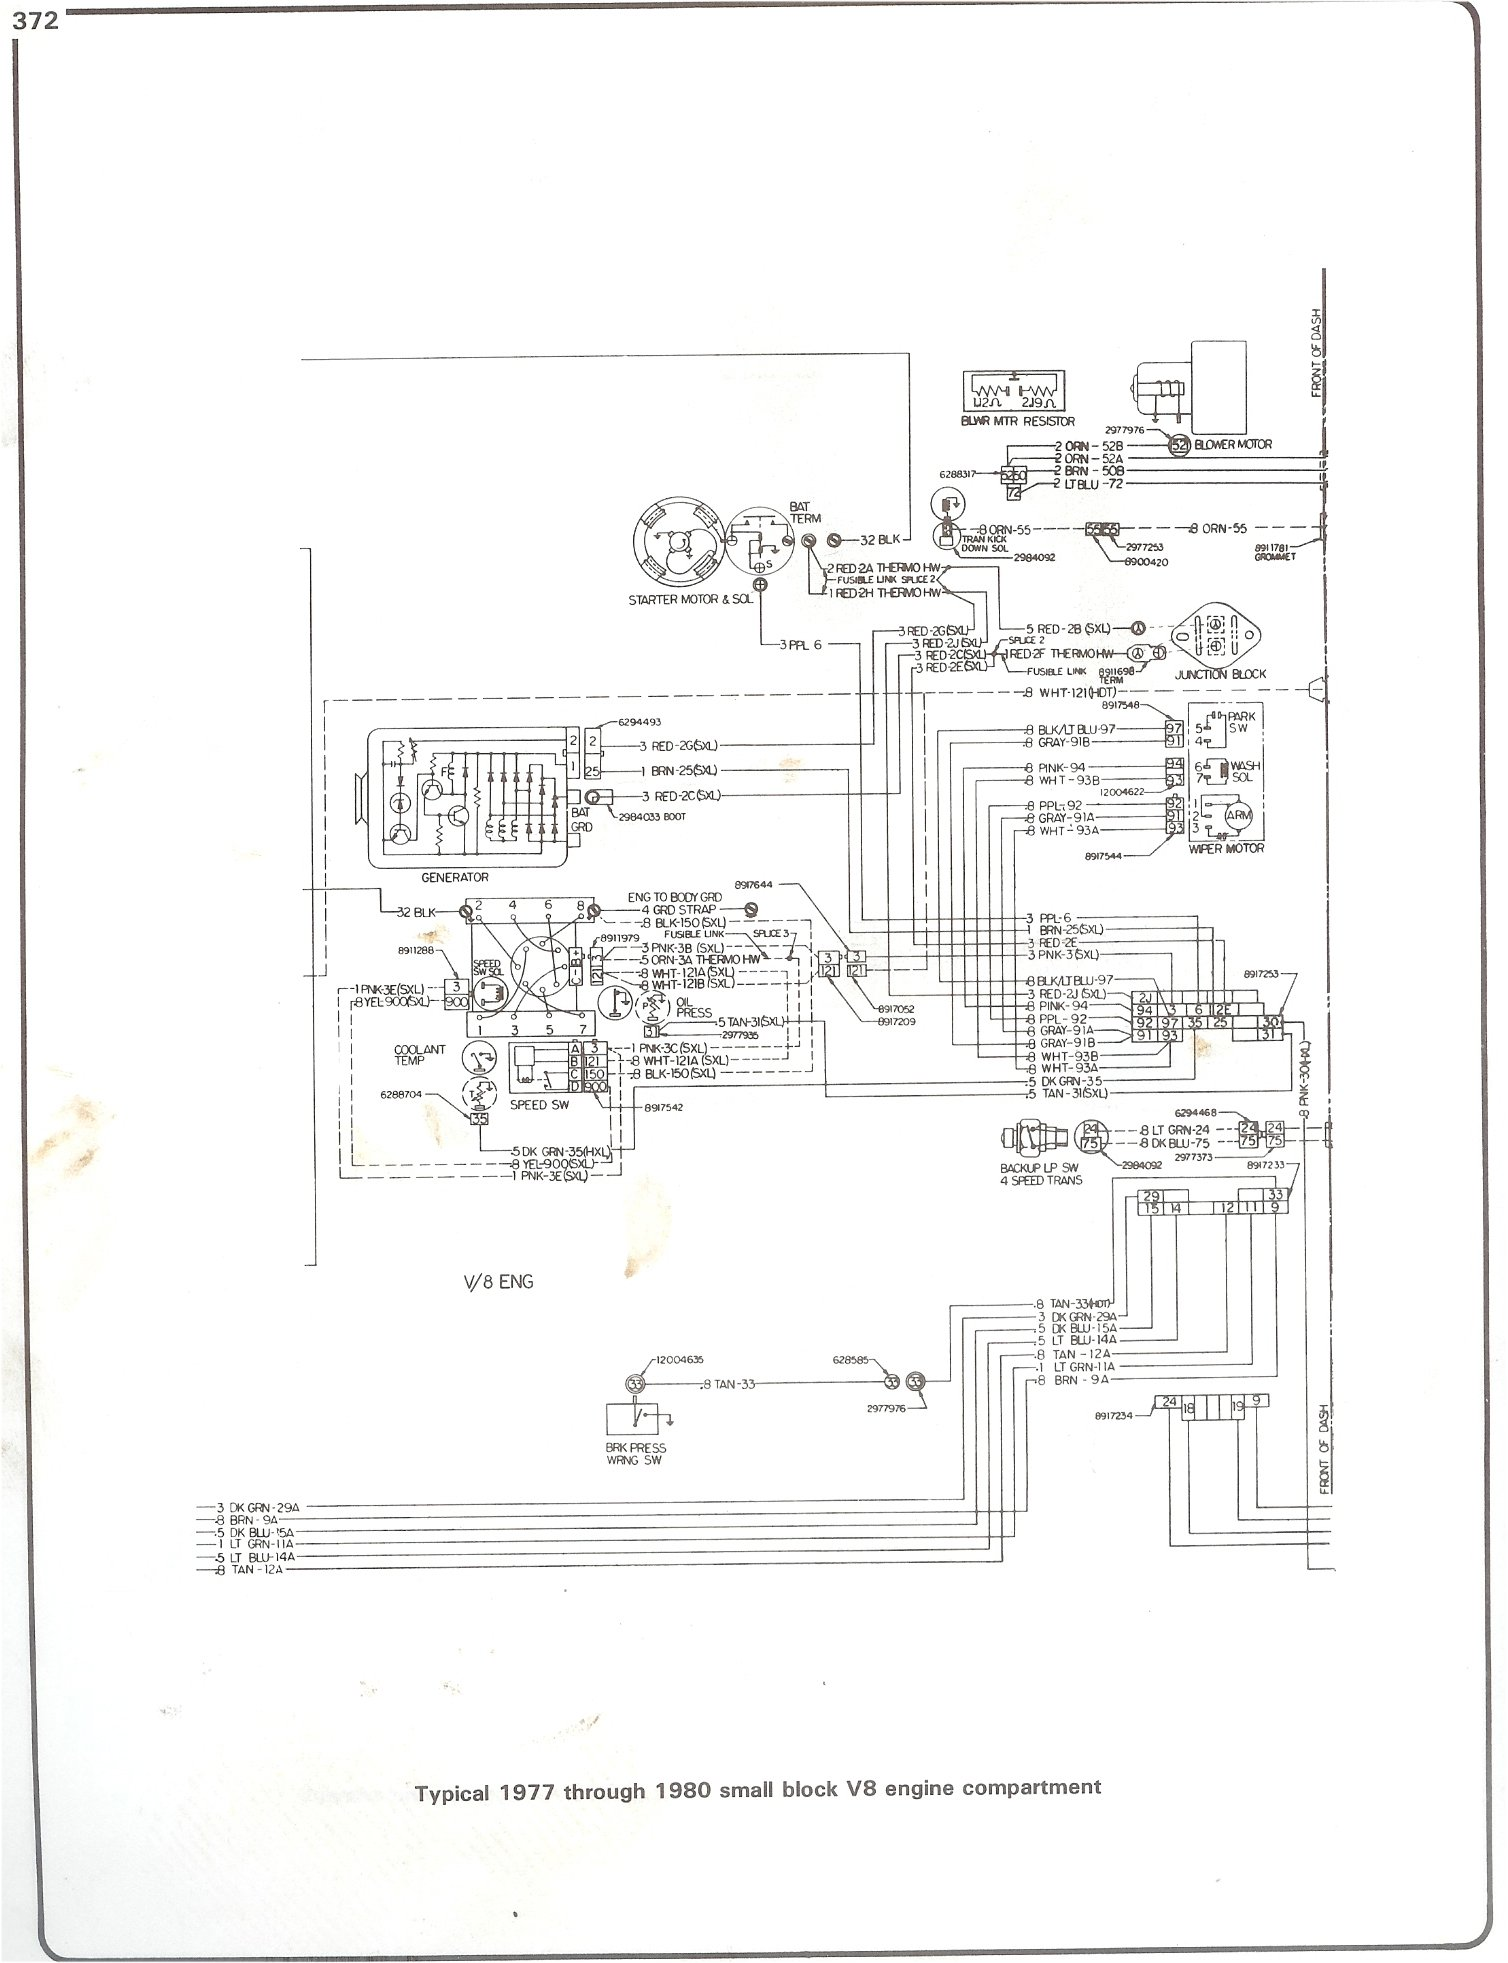 Complete 73 87 Wiring Diagrams 2005 Suburban Diagram 77 80 Sbc Engine